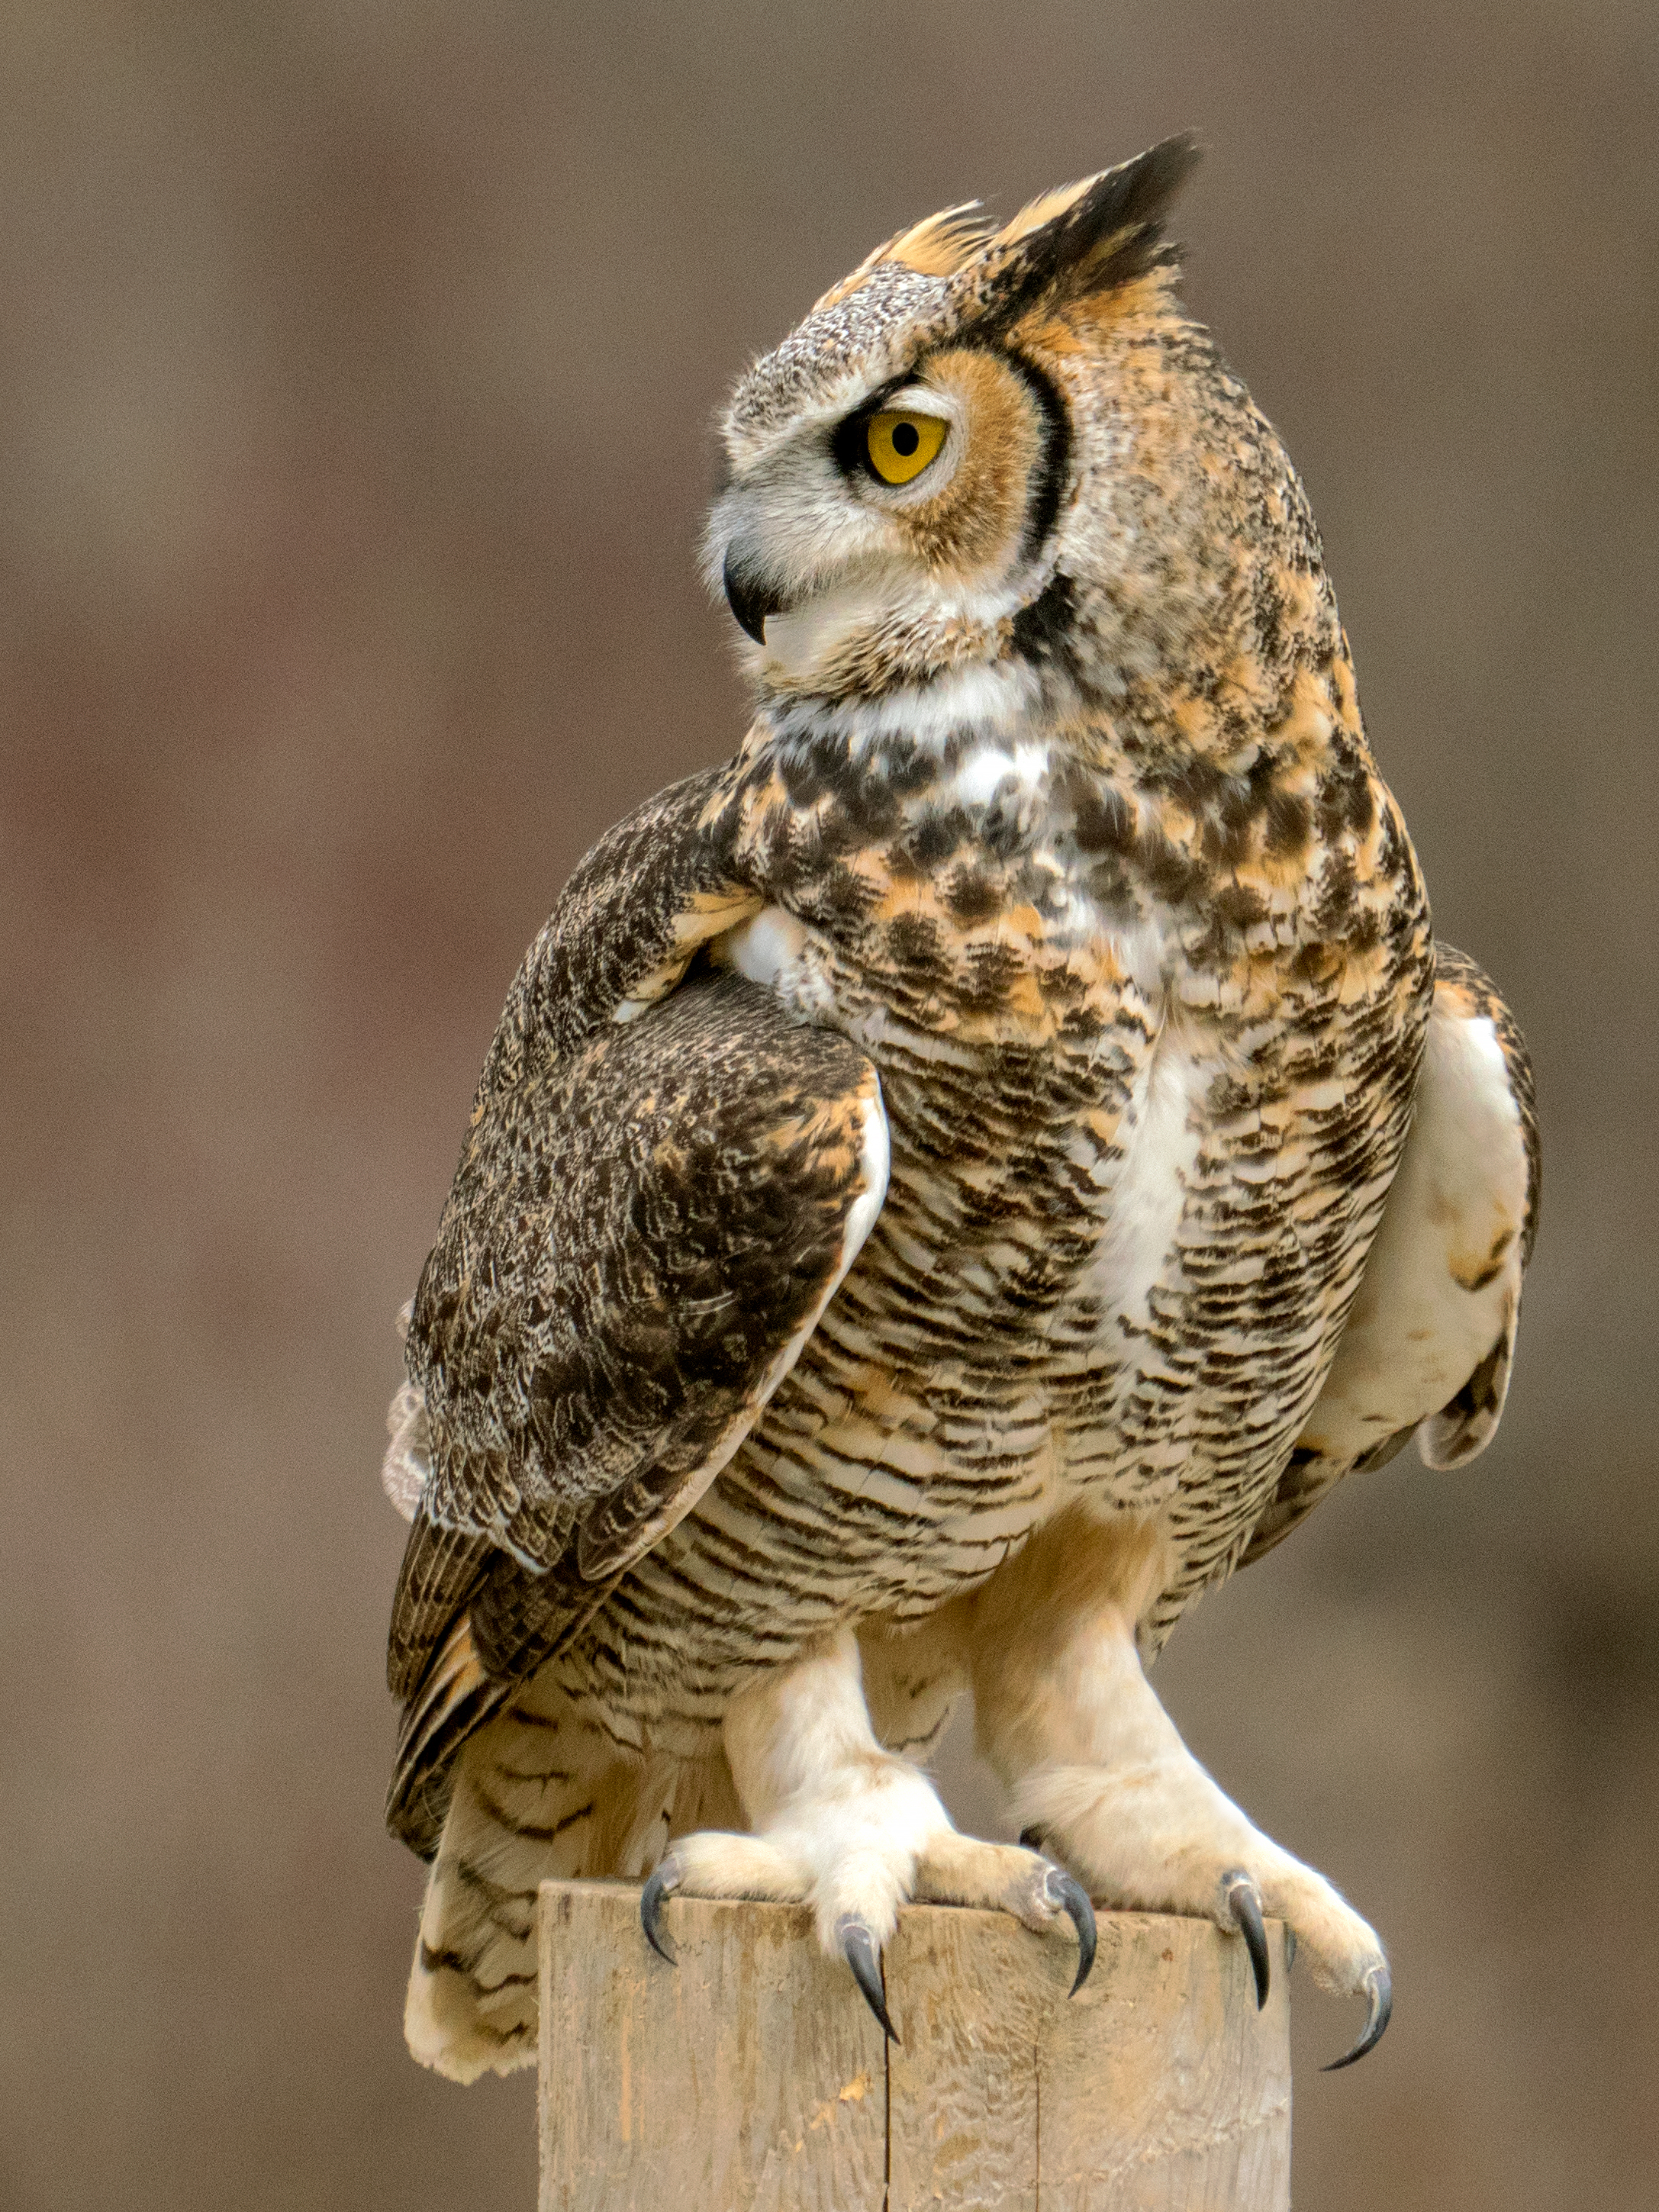 Talons, Great Horned Owl (Canada)